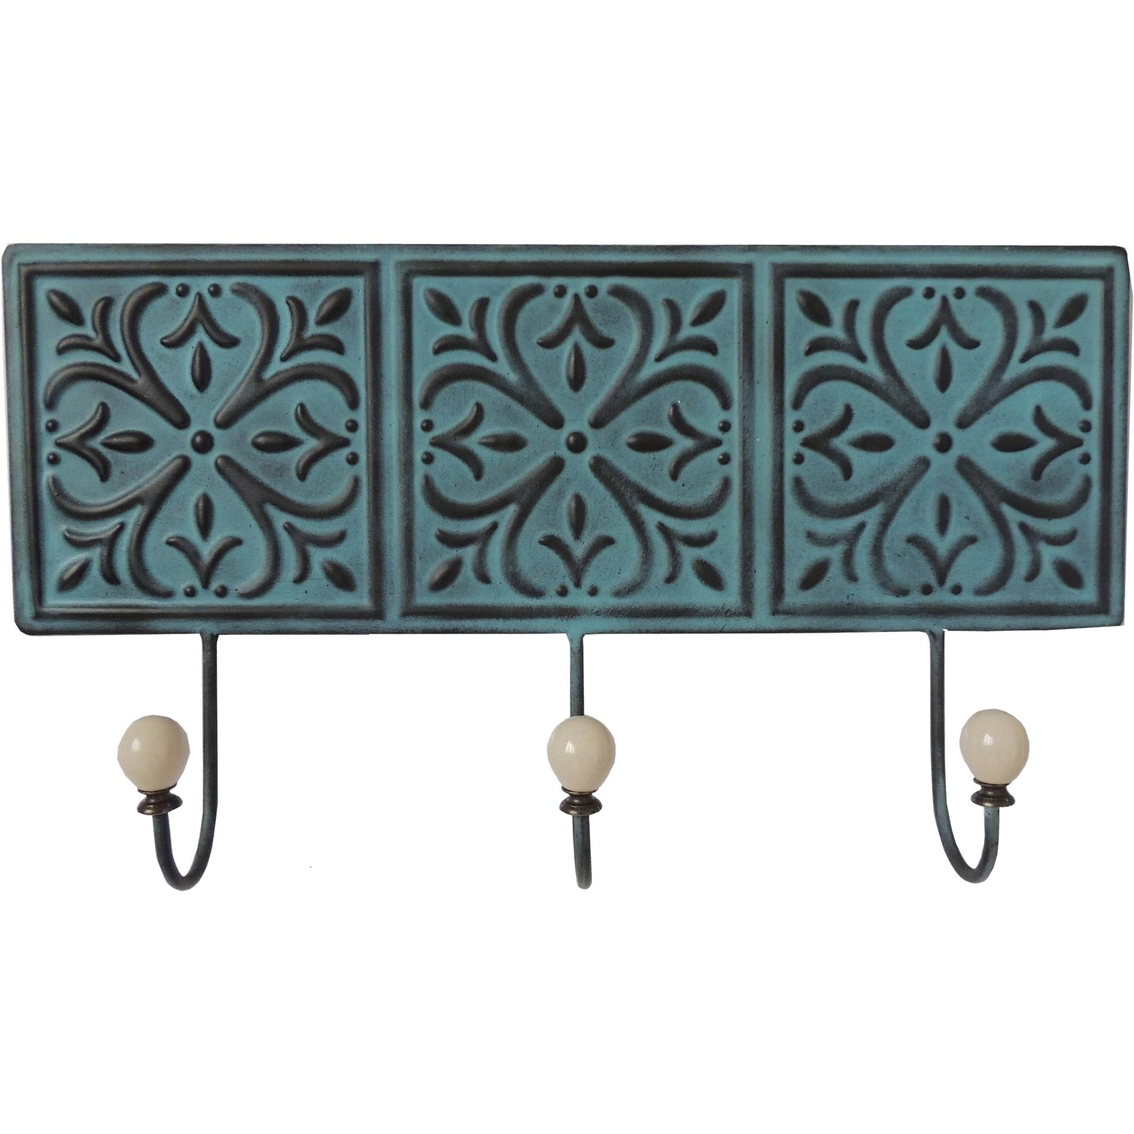 Metal Wall Decor With Three Hooks Wall Sculptures Home Appliances Shop The Exchange